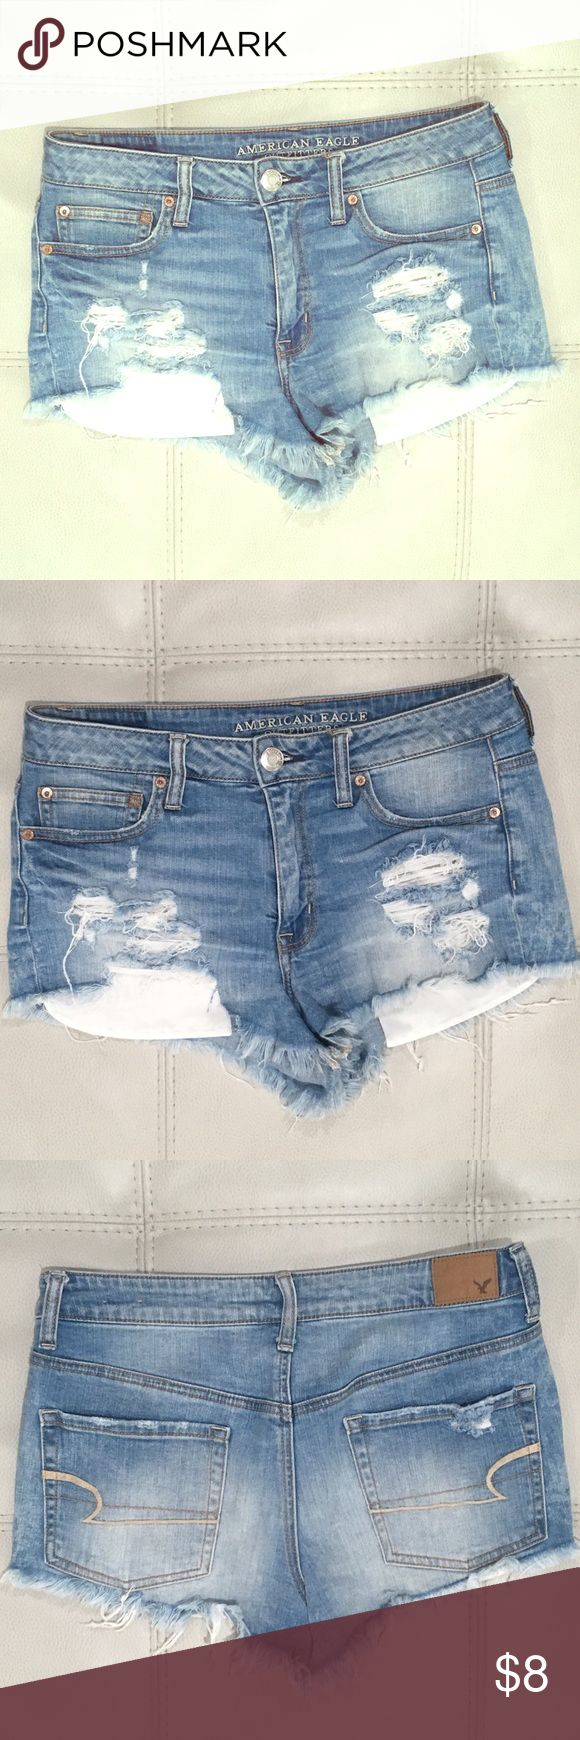 American Eagle 🦅 Jean Shorts! M 8 Denim Cut-offs EUC. From a smoke-free, pet-free, meticulously clean home. ;) Will be listing lots more fabulous items at fab prices..please feel free to check them out, bundle discounts available! Thanks for looking and have a great day! :) American Eagle Outfitters Shorts Jean Shorts